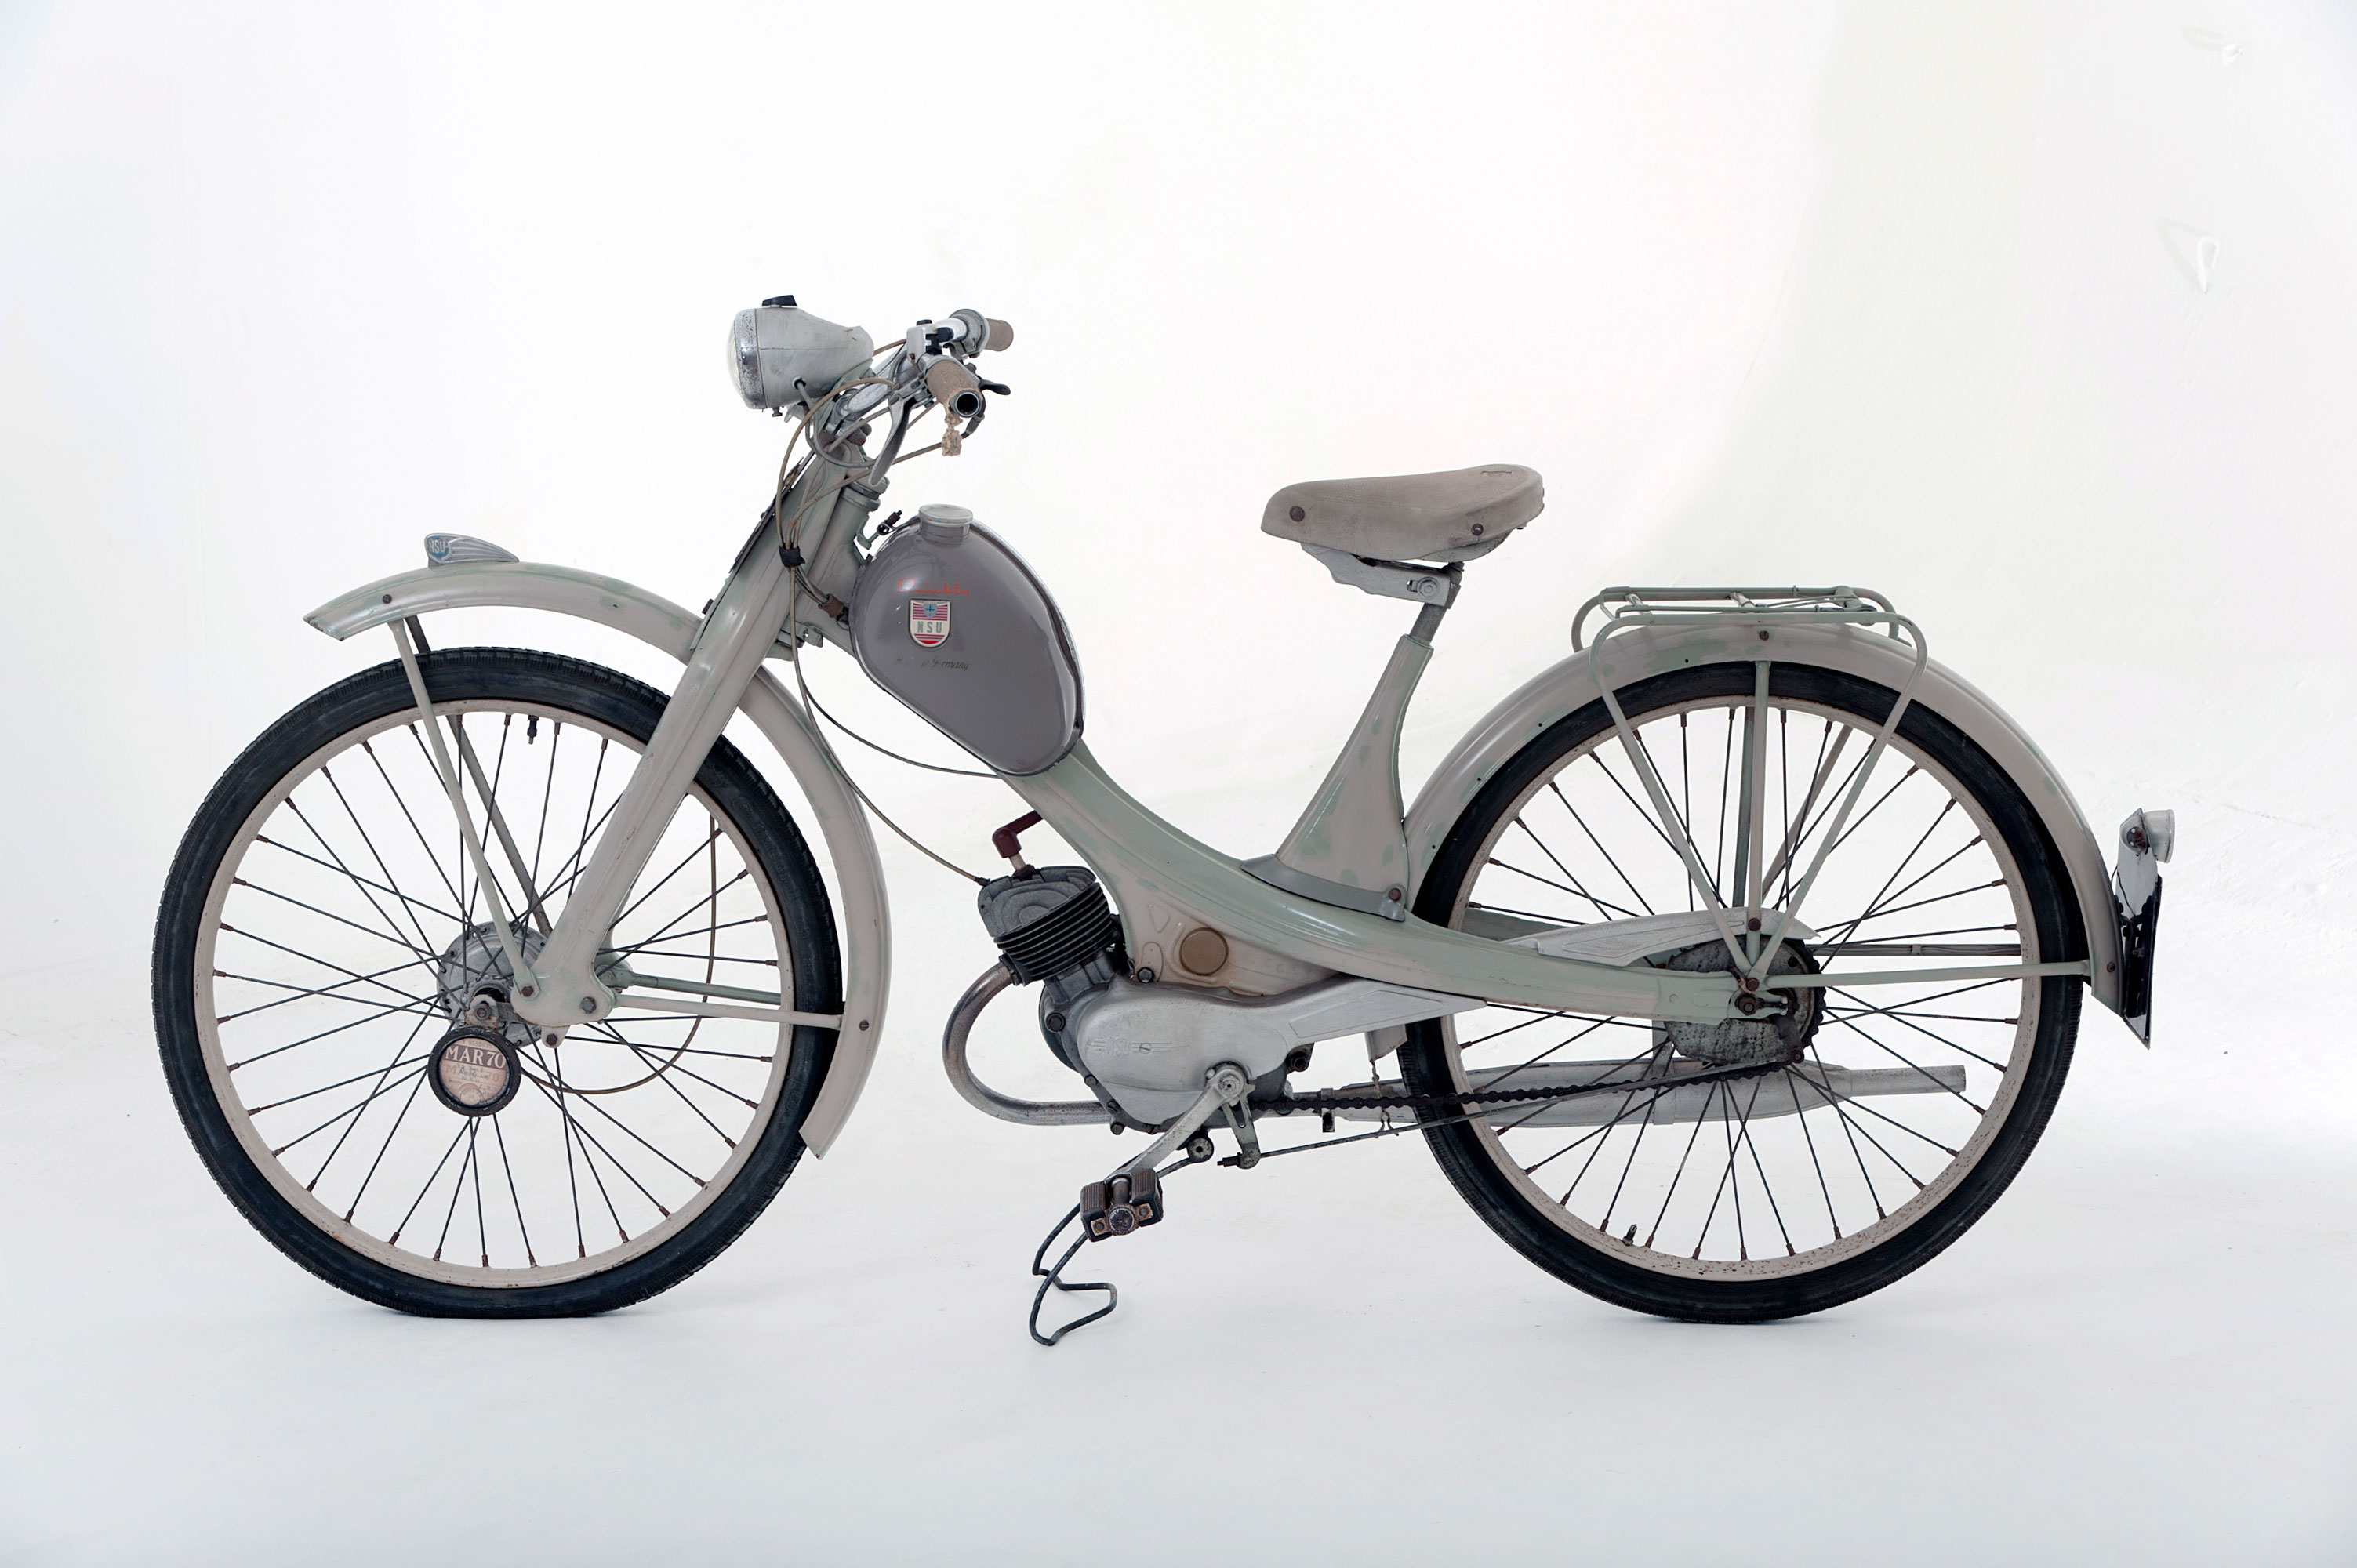 NSU Quickly moped 1958